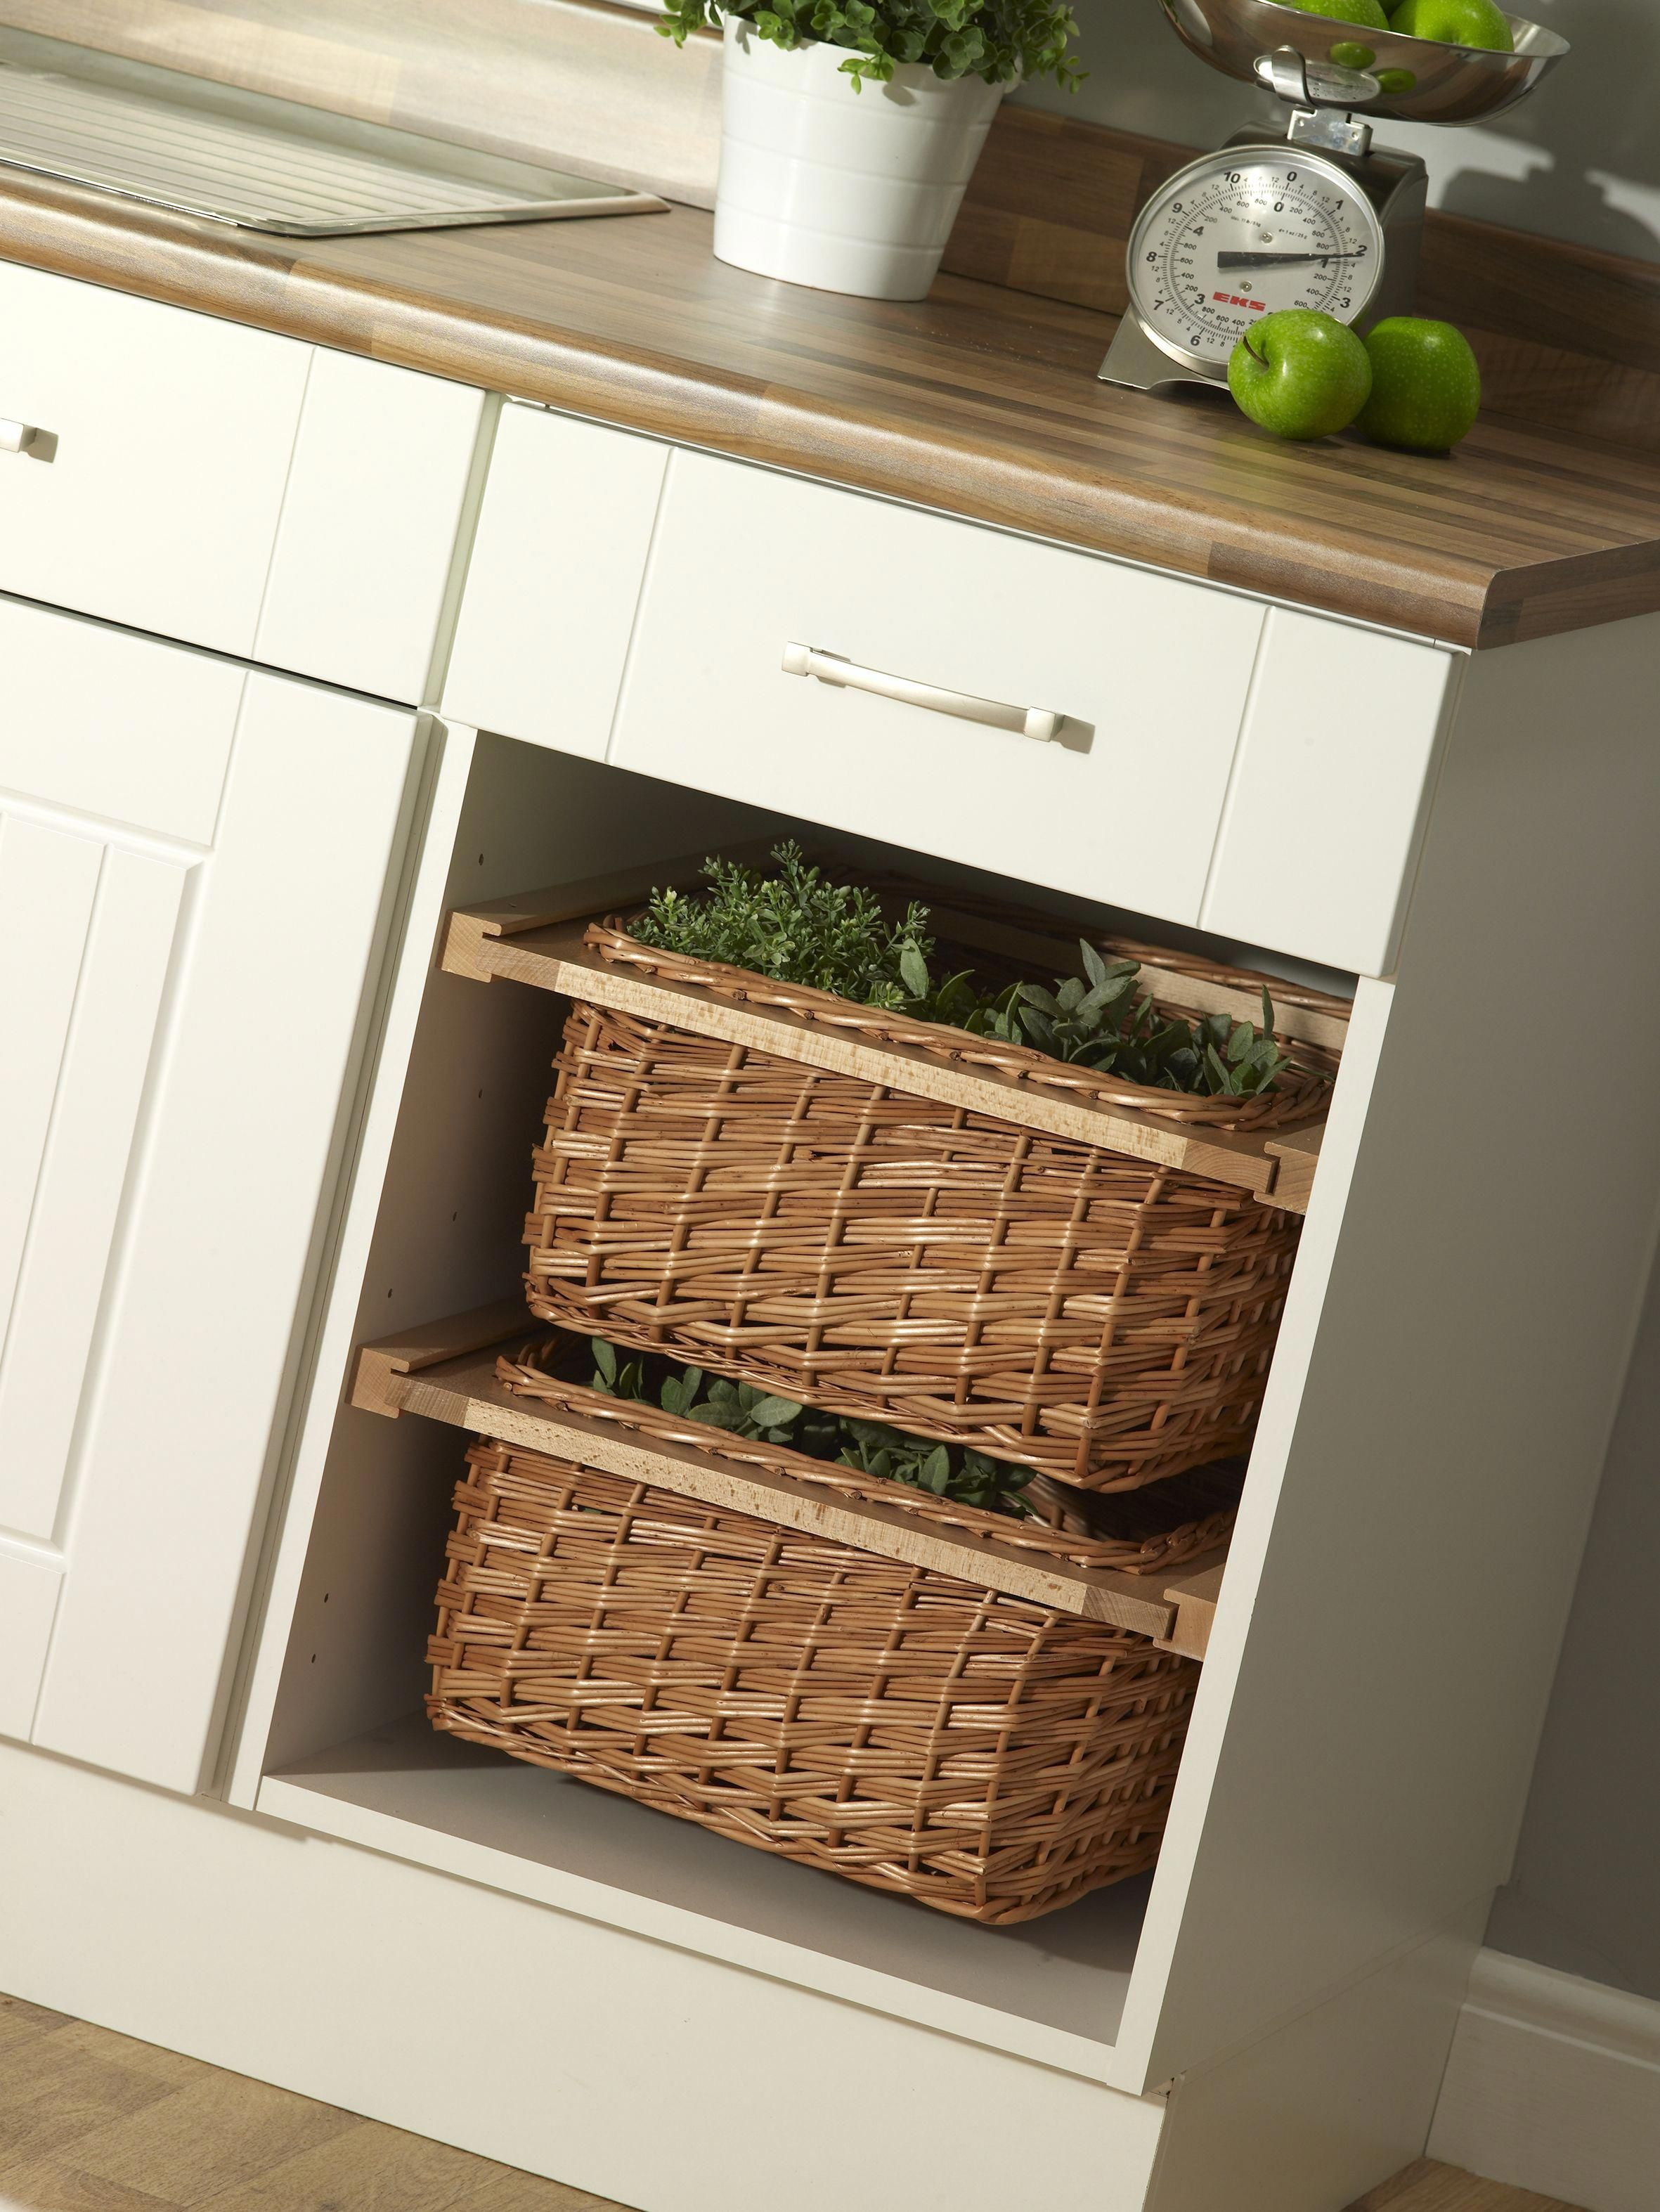 Wicker Baskets Create A Stylish Storage Alternative To Shelving Or Modern Drawers Kitchen Ideas Kitchen Inspiration Modern Kitchen Design White Modern Kitchen